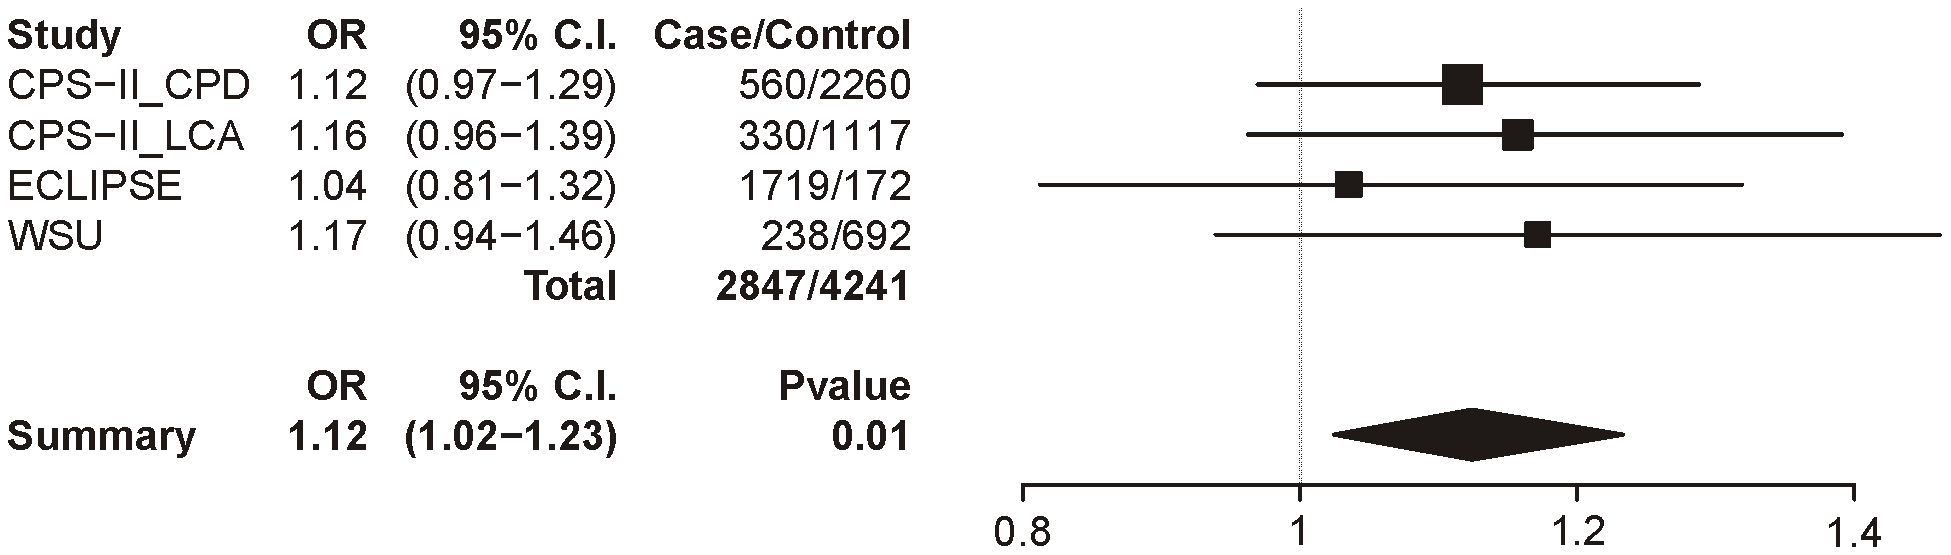 Forest plot for COPD at locus 1 (tagging rs16969968).